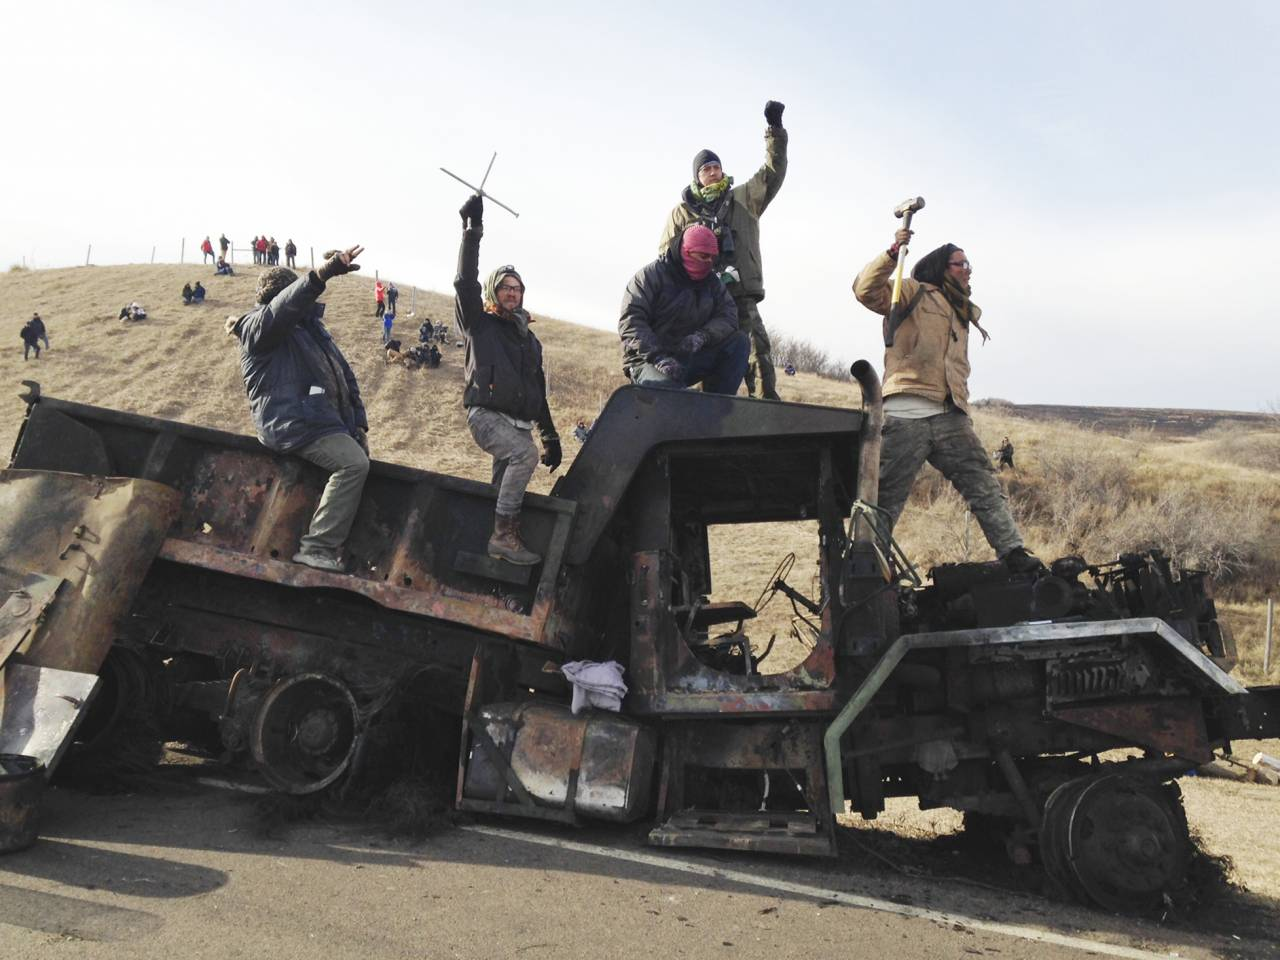 ND governor orders evacuation of protesters near Dakota Access Pipeline